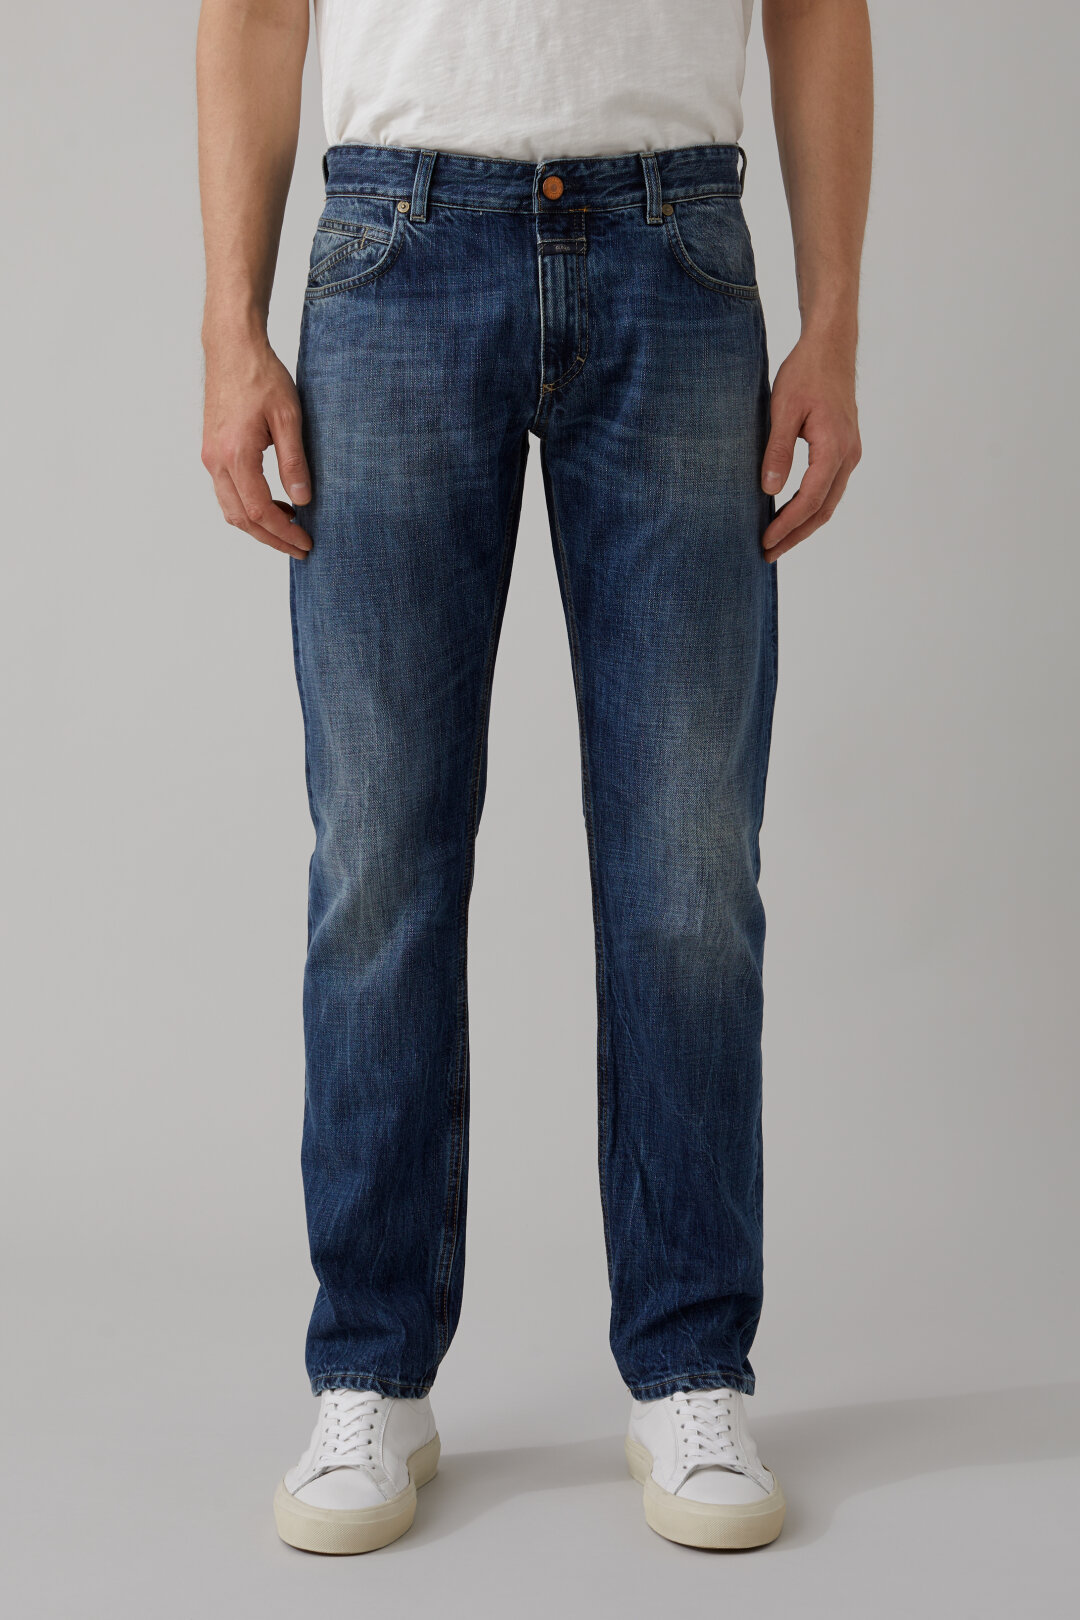 Unity Slim Blue Selvedge Denim